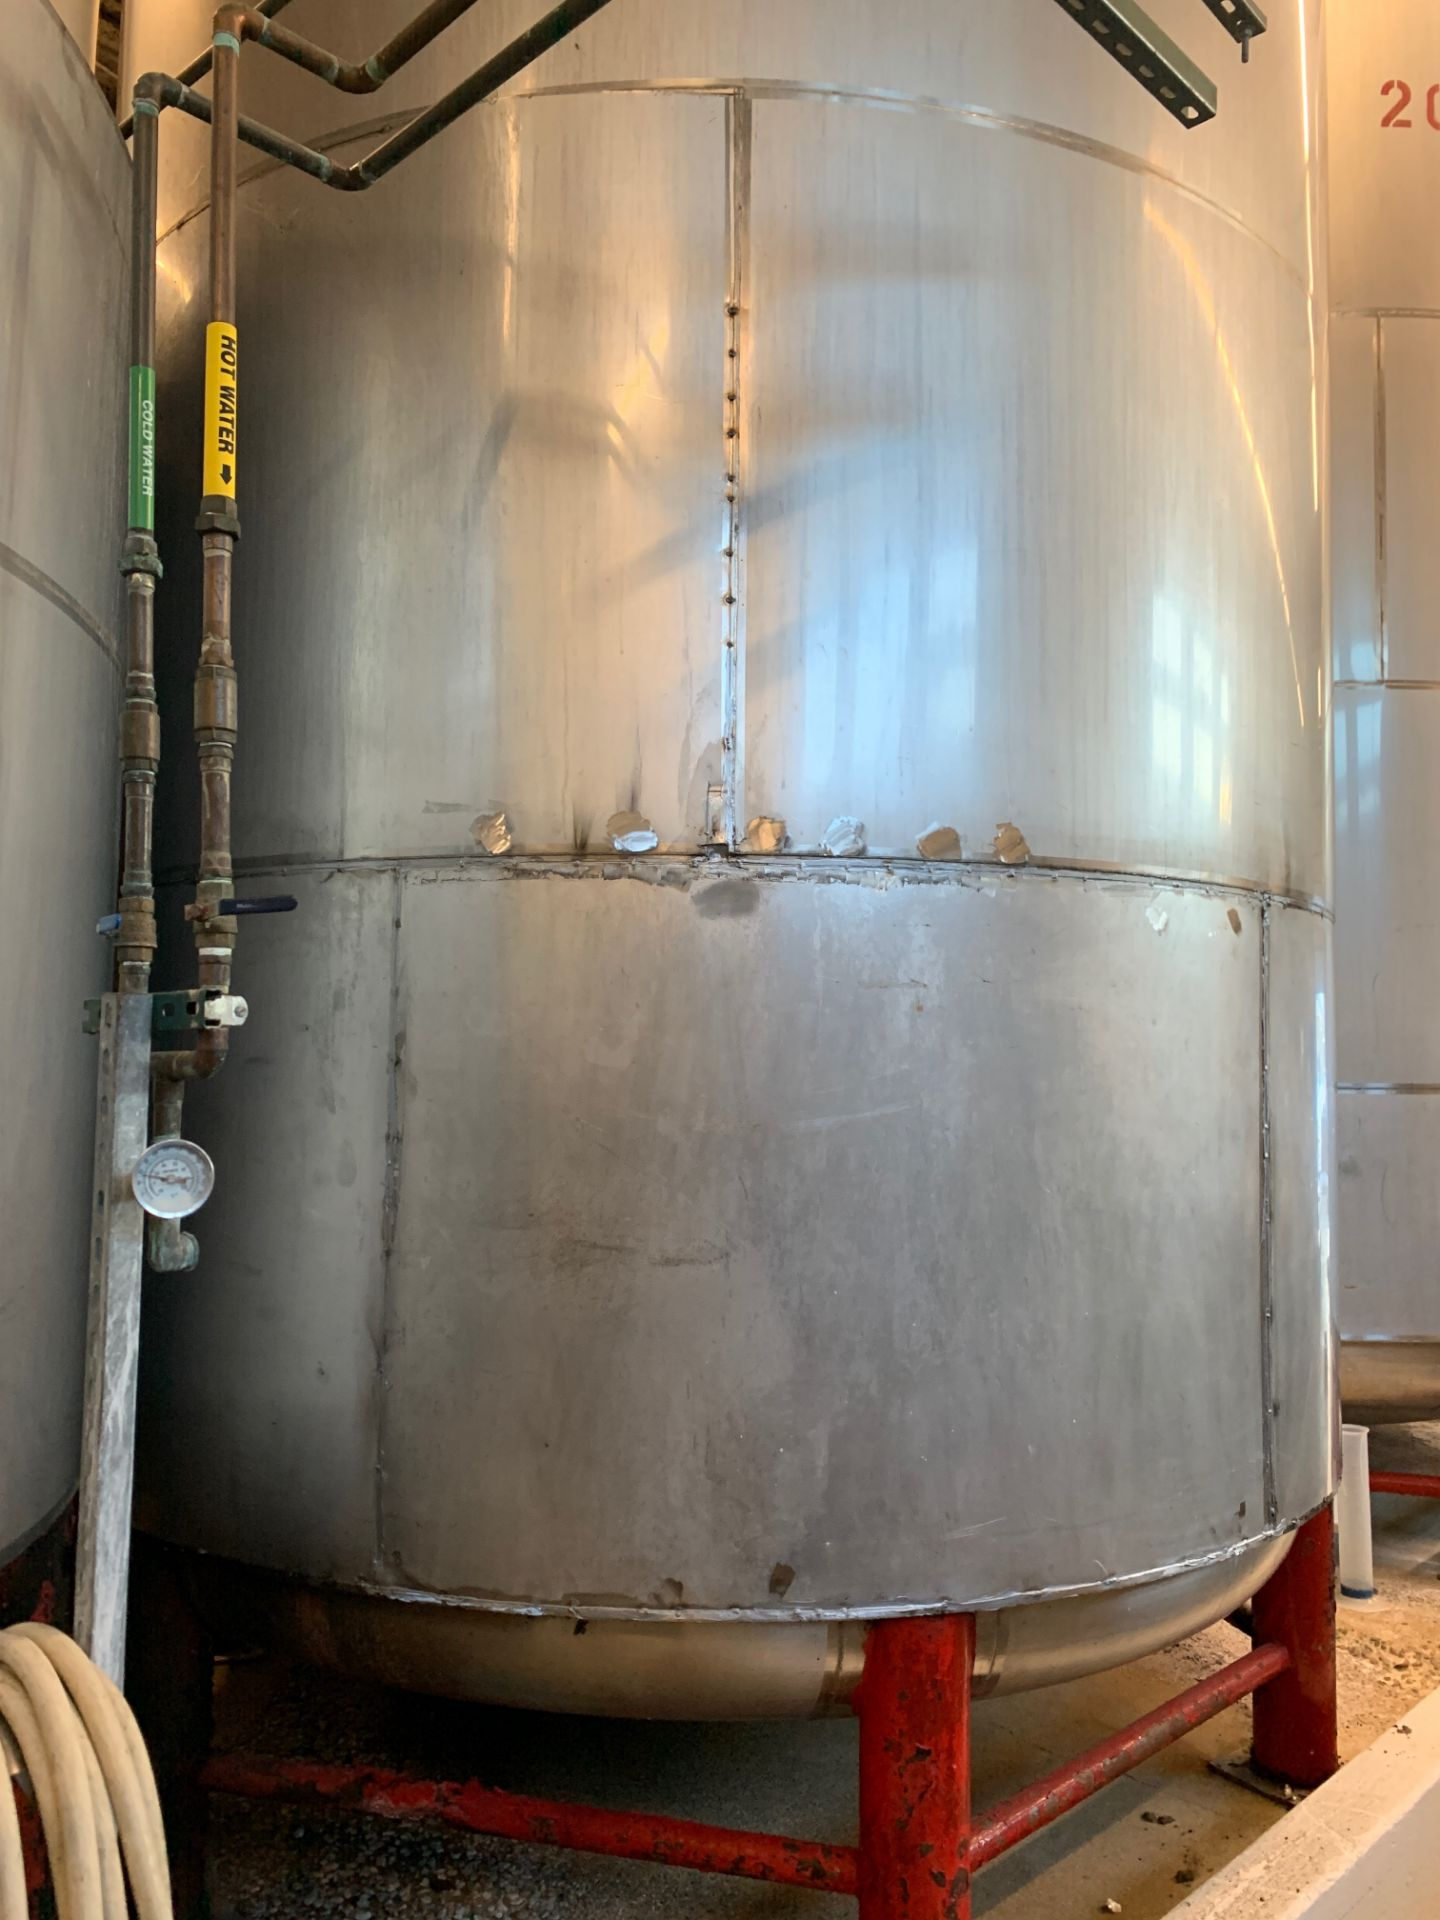 Lot 13 - Santa Rosa 200 BBL Brite Tank, Dish Bottom, Dome Top, Glycol Jacketed, Stainless St | Rig Fee: $3300